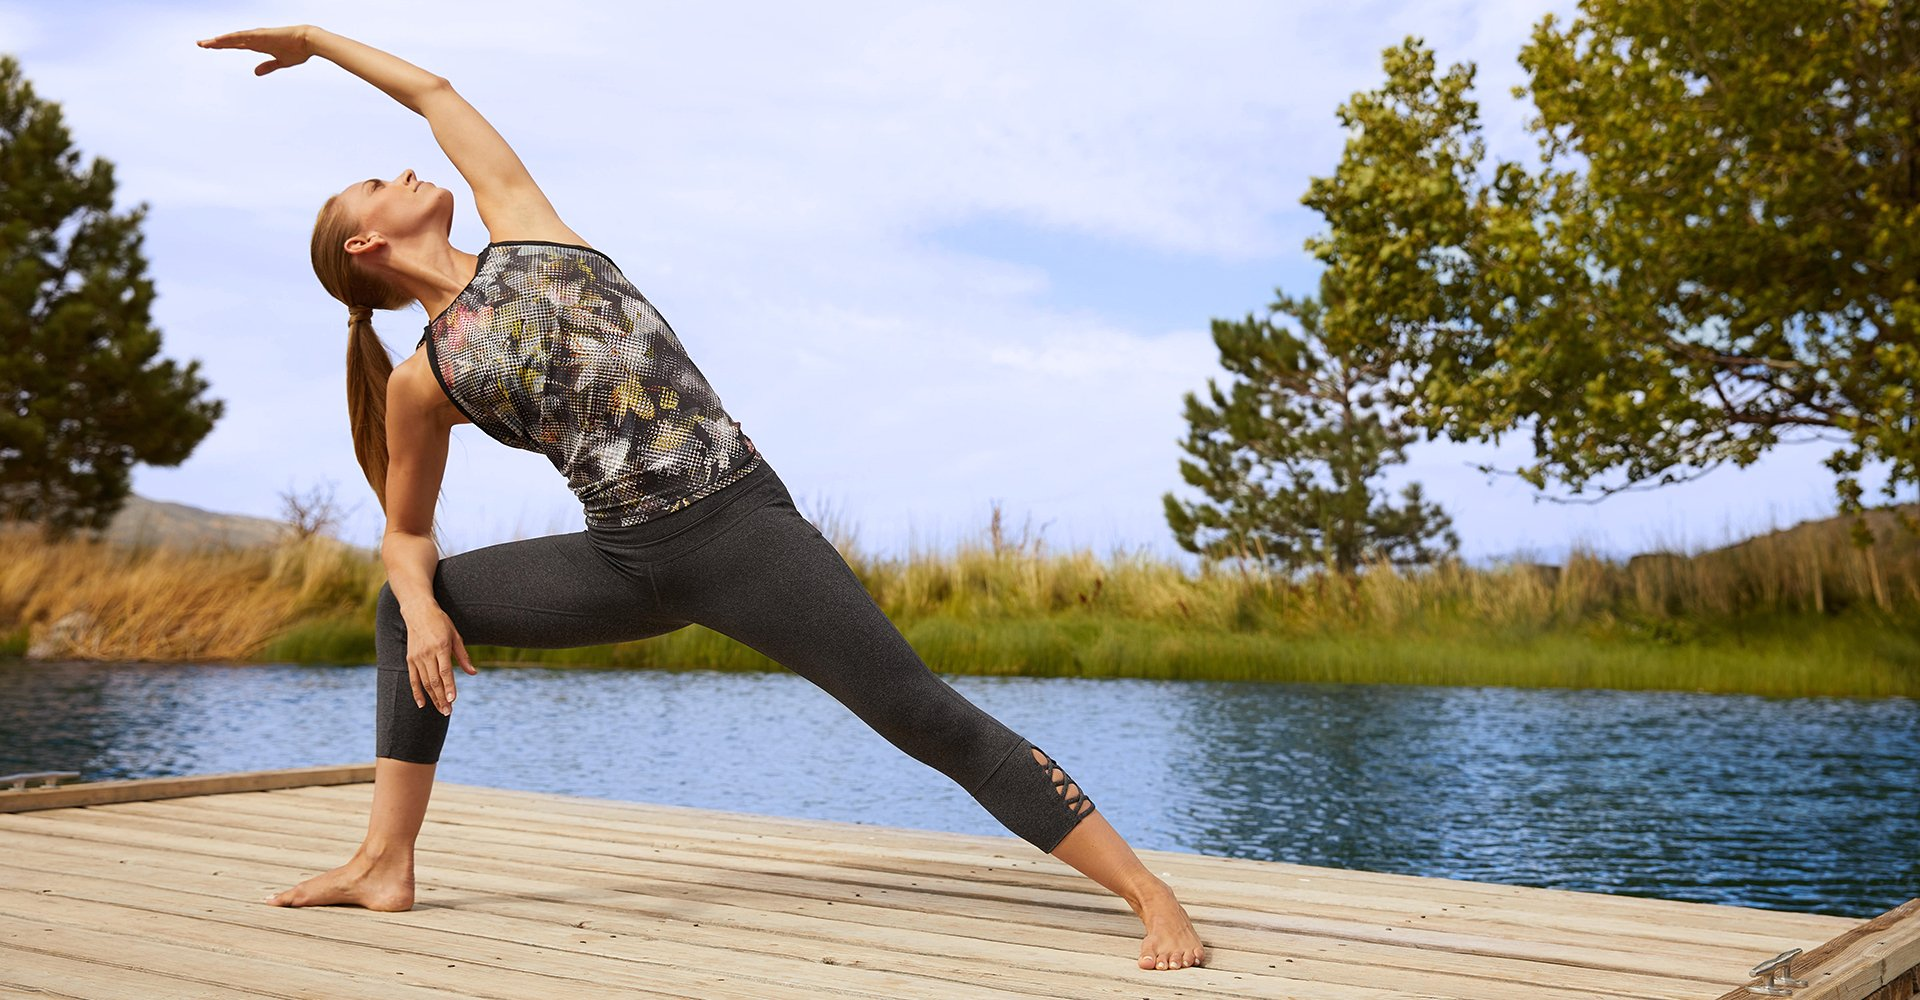 Image of Woman in Yoga Extended Side Angle Pose. Image links to Leggings new arrivals.